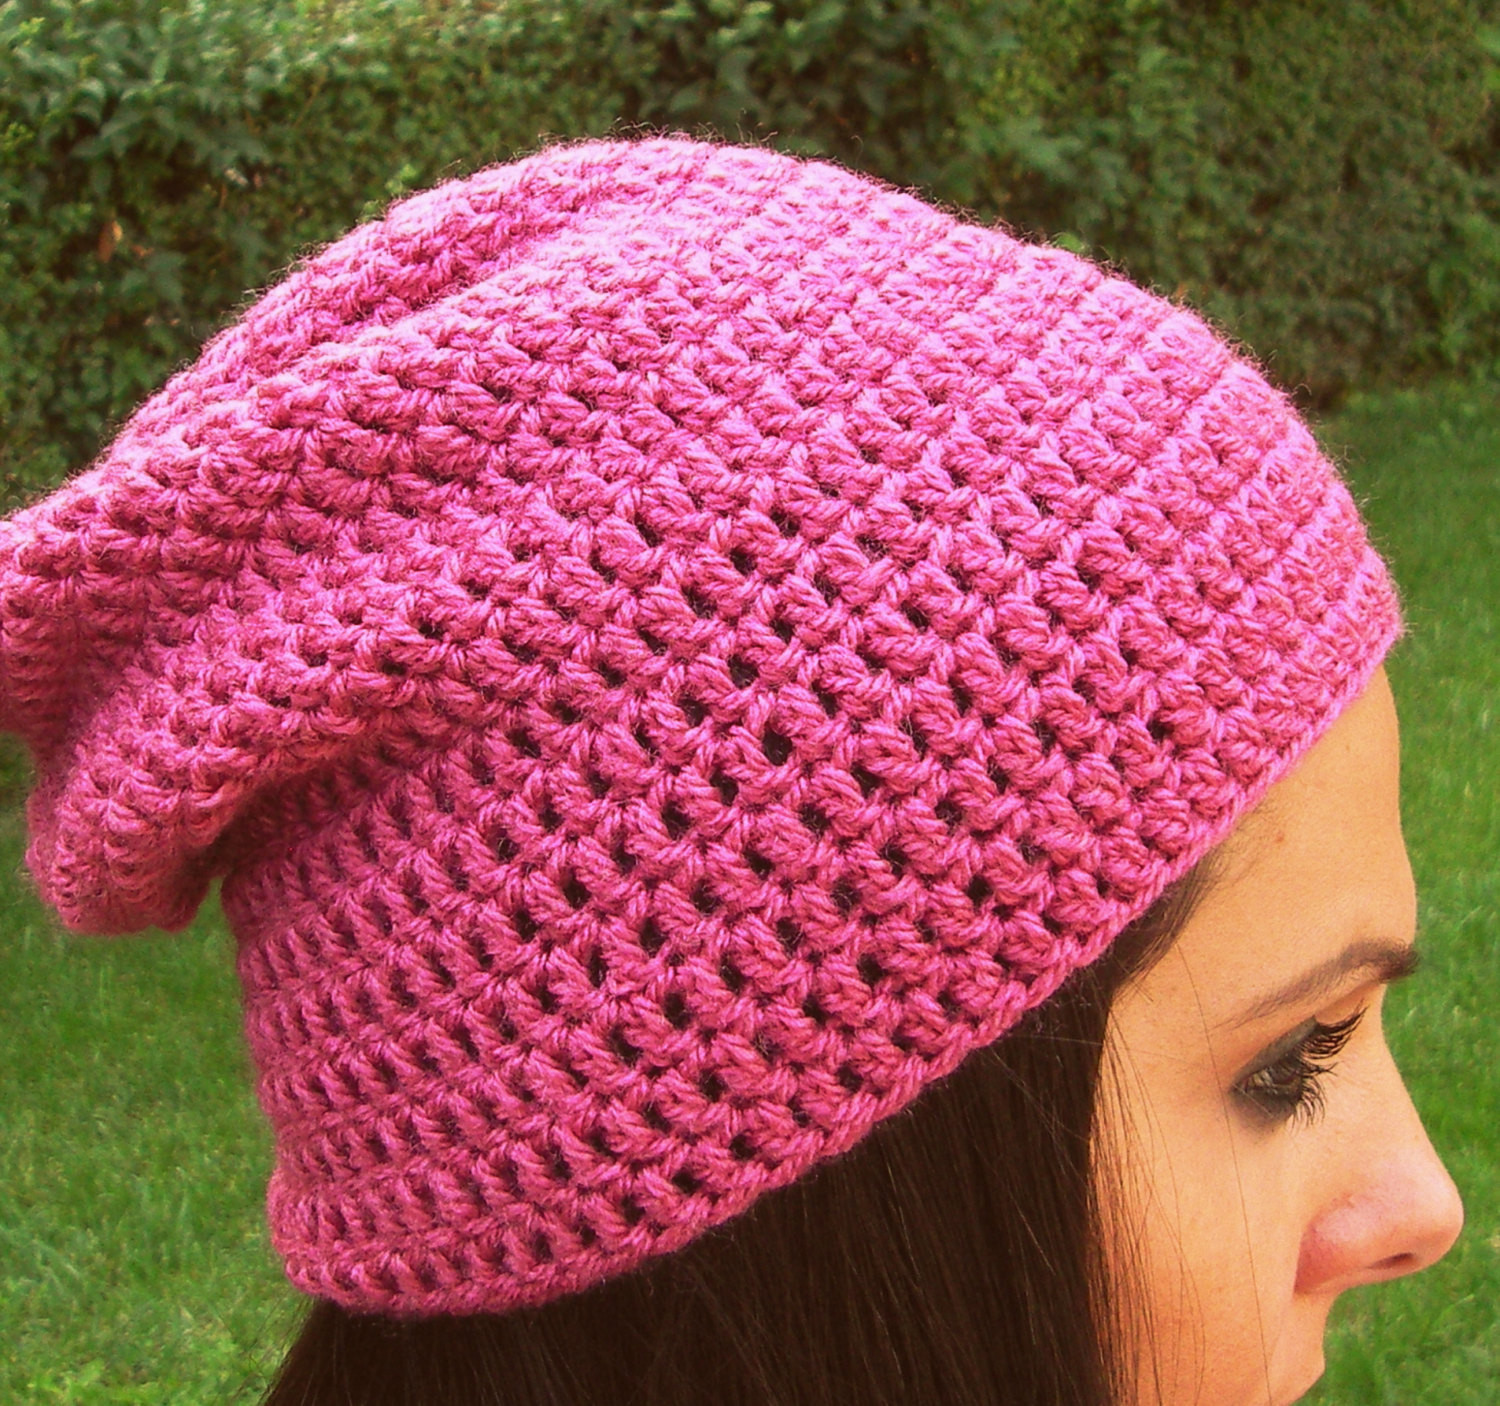 Pink crochet hat pink handmade hat pink woman hat pink